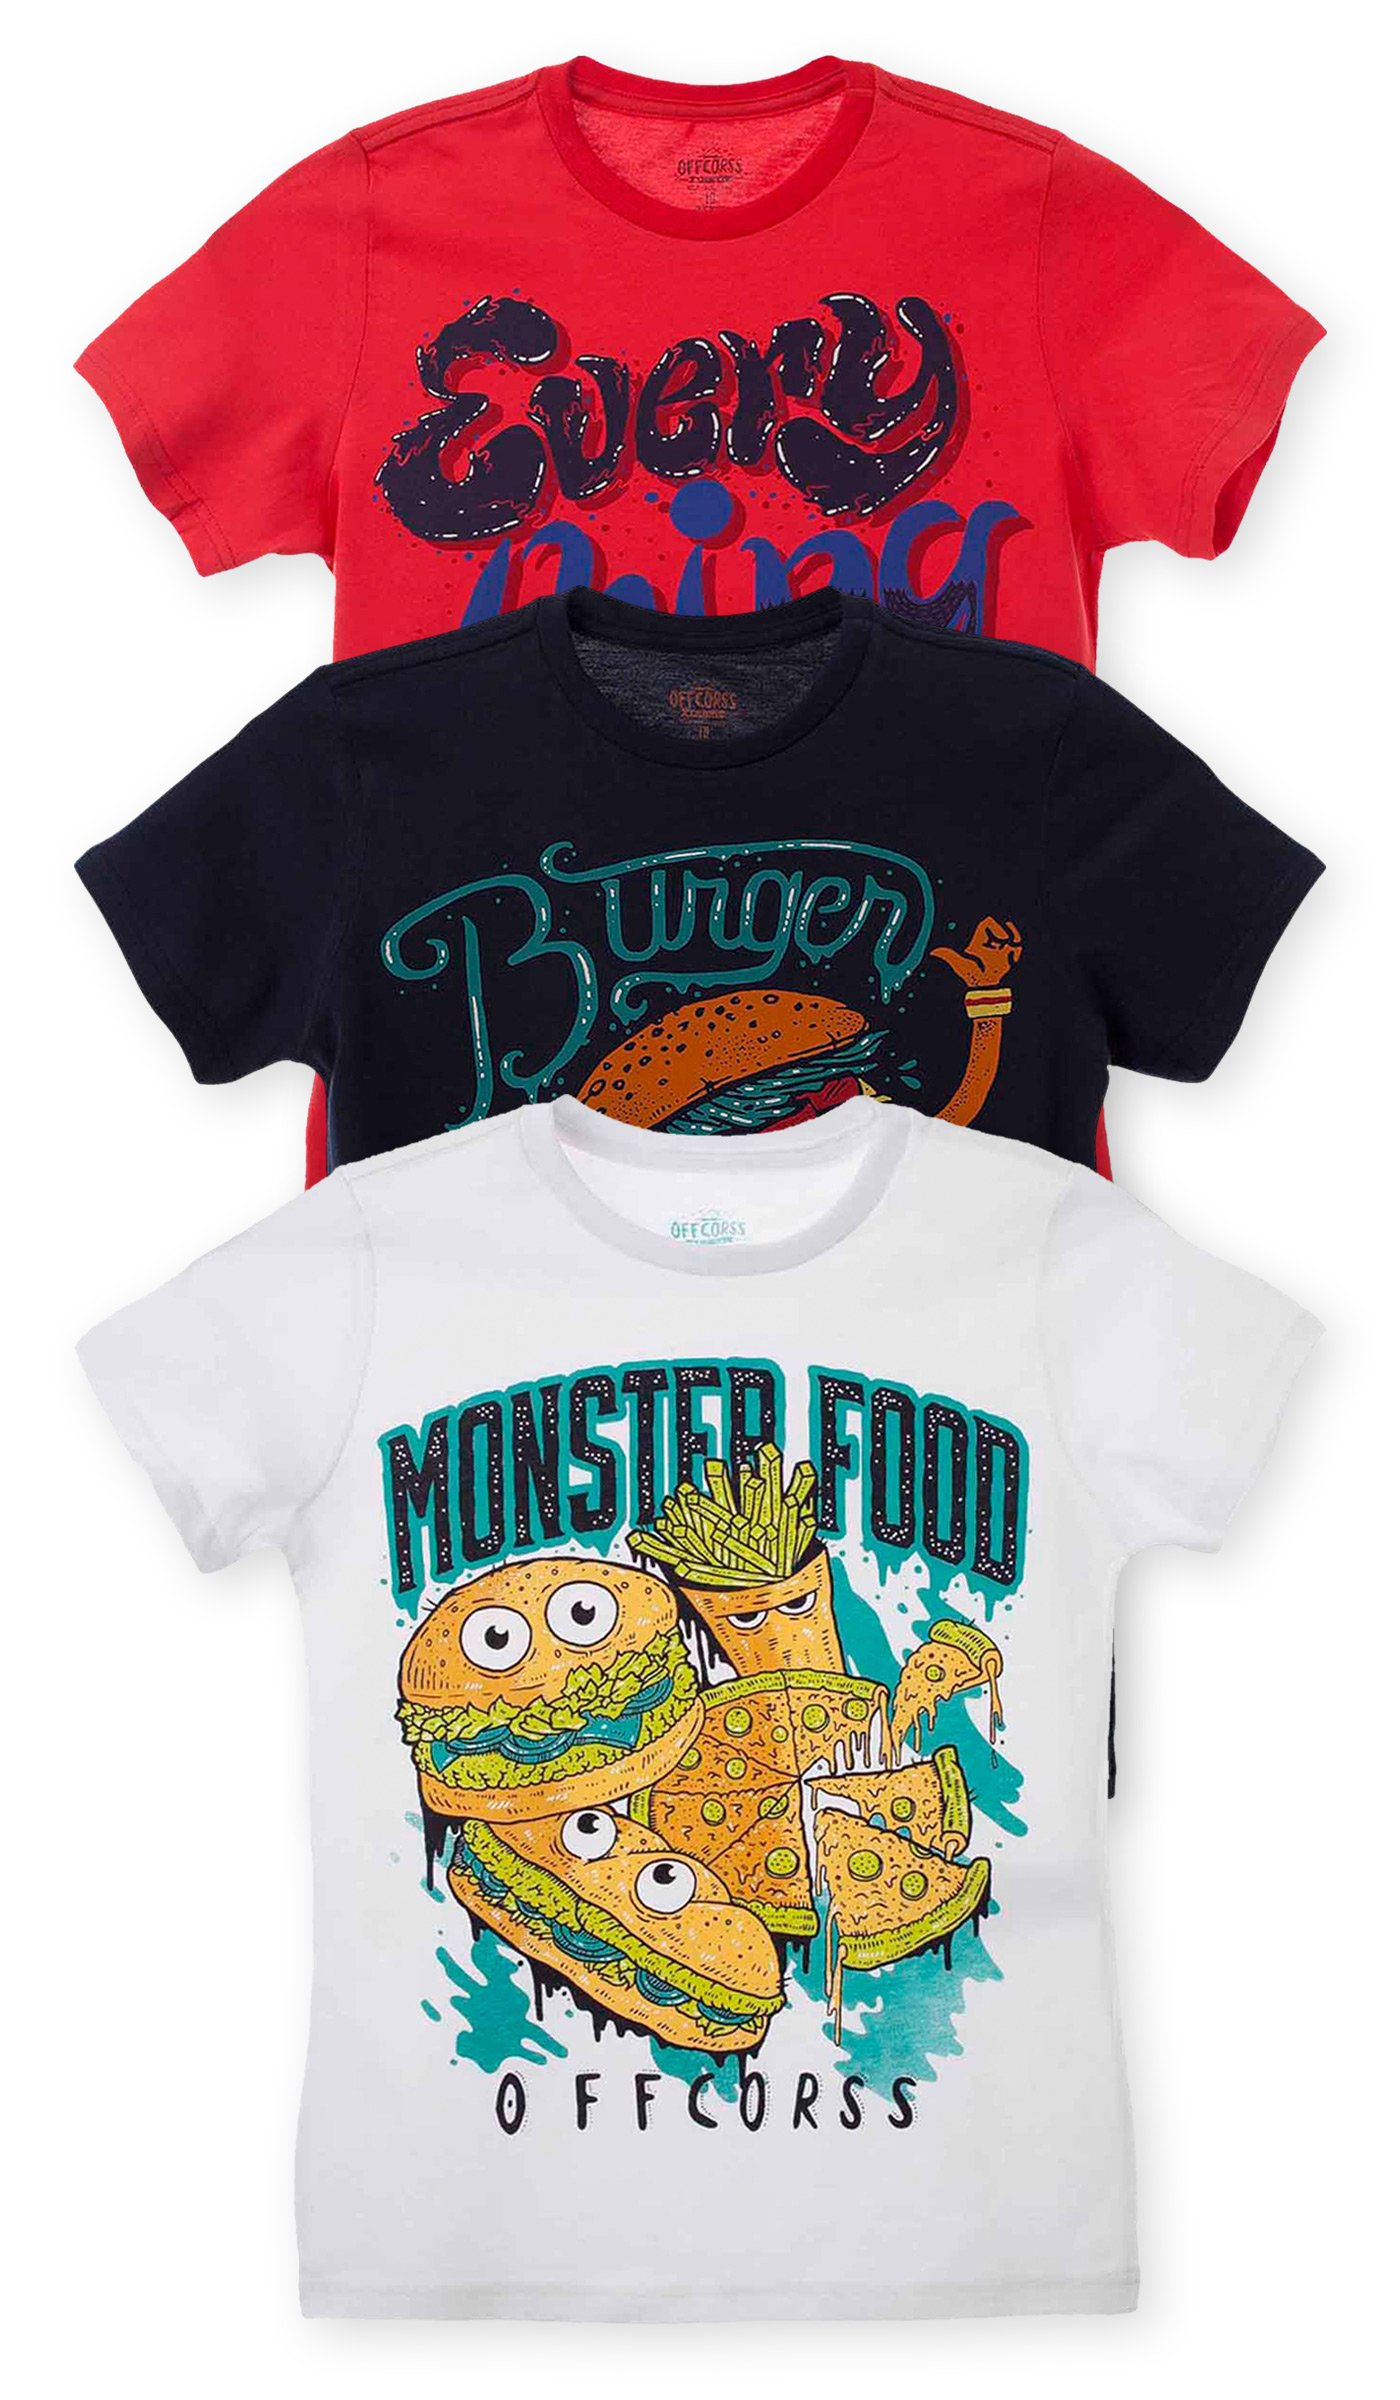 OFFCORSS Trendy Stylish Short Sleeve Tshirt for Kids Camisetas De Niños 3Pack 10